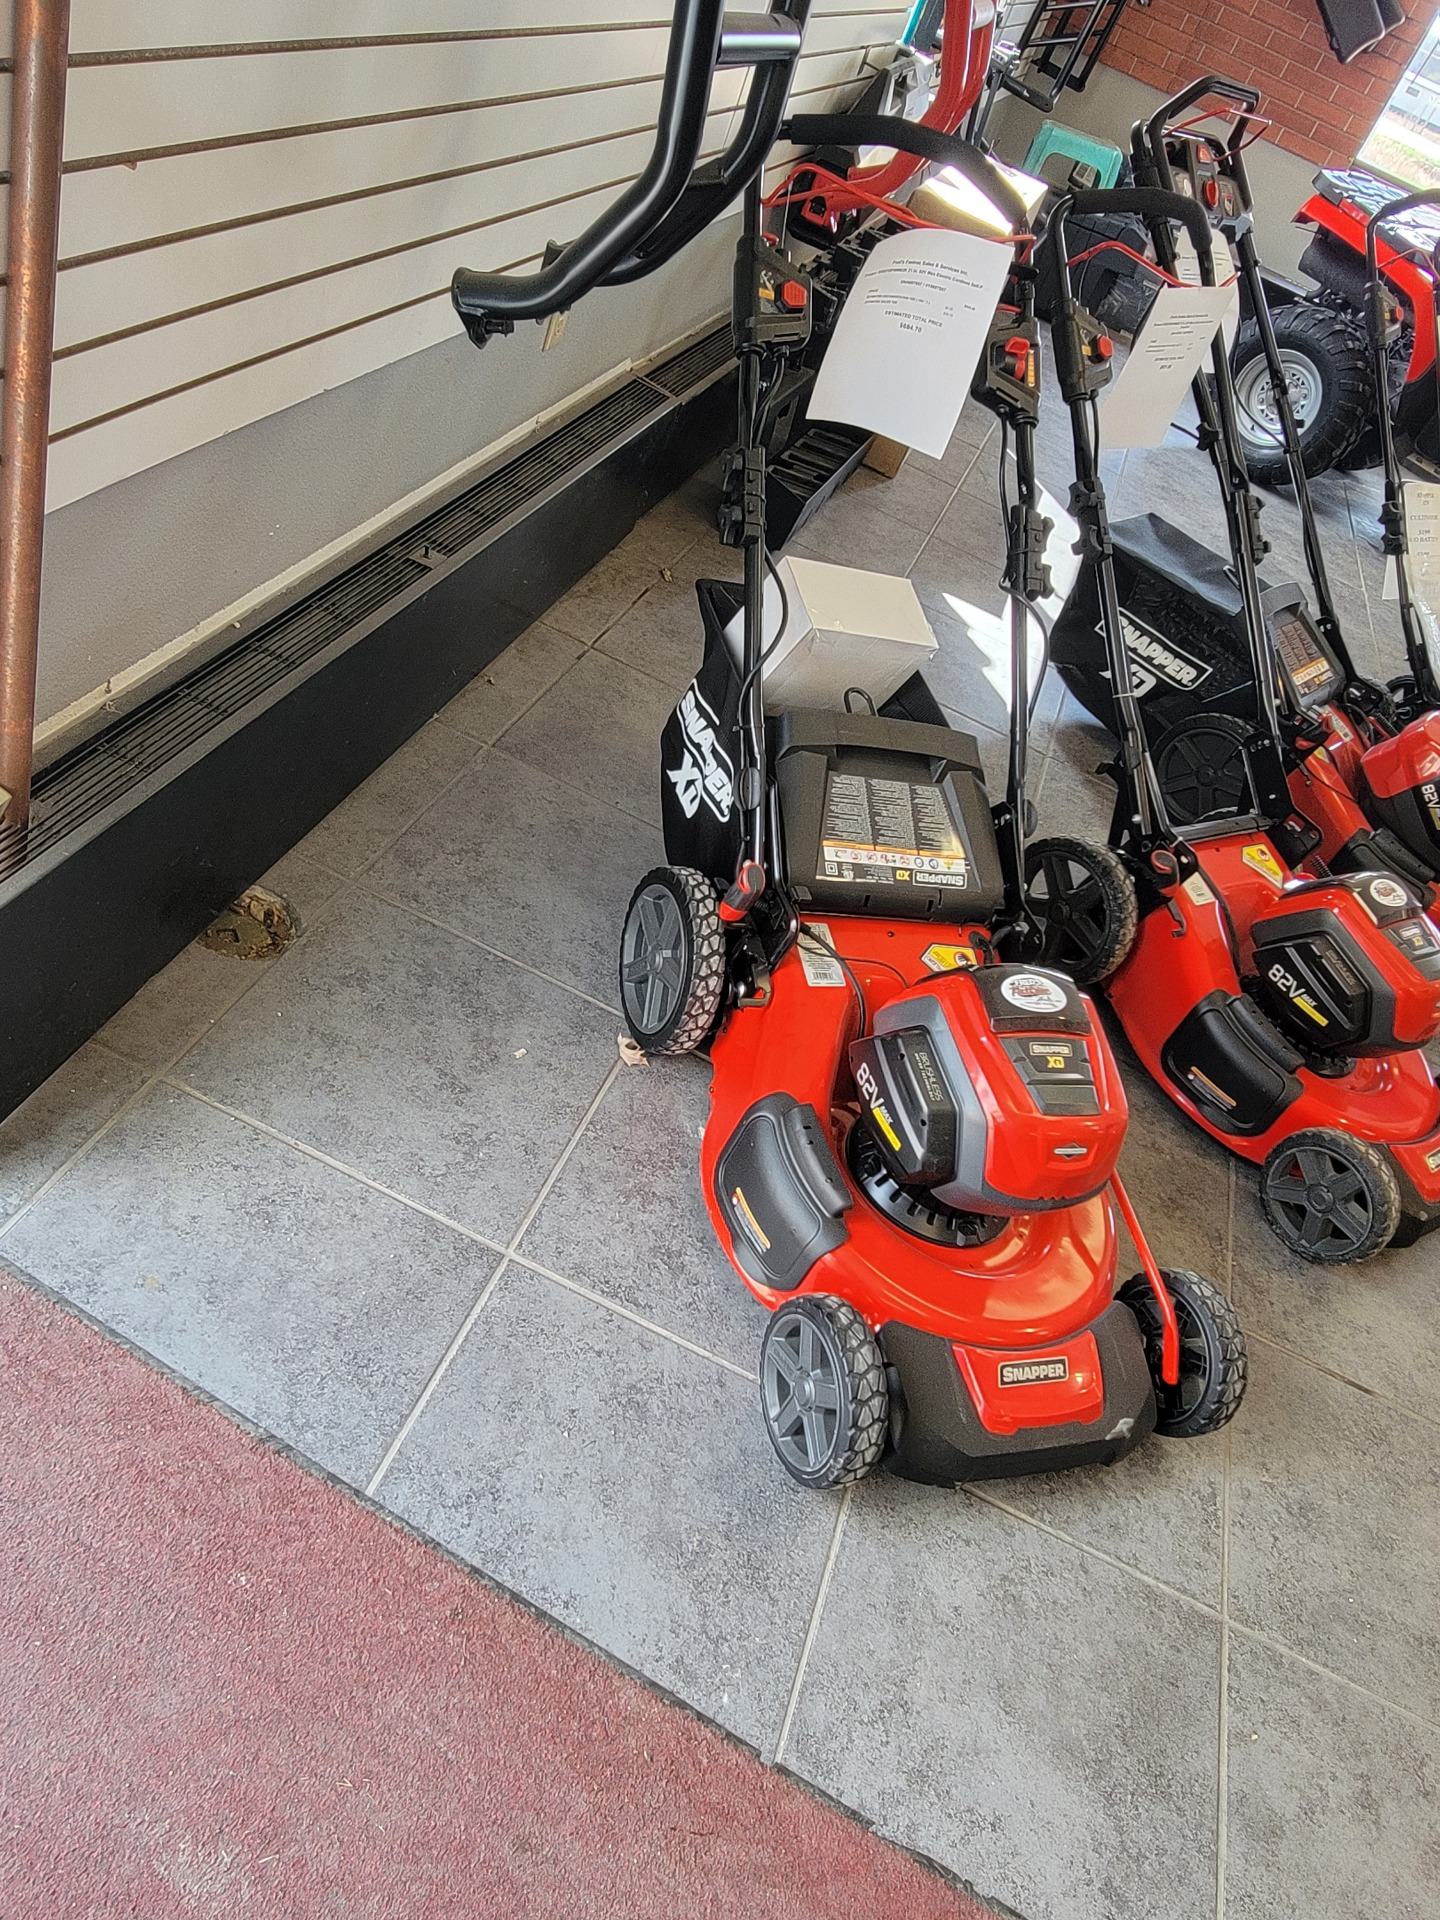 Snapper SXD21SPWM82K 21 in. 82V Max Electric Cordless Self-Propelled in Fond Du Lac, Wisconsin - Photo 3